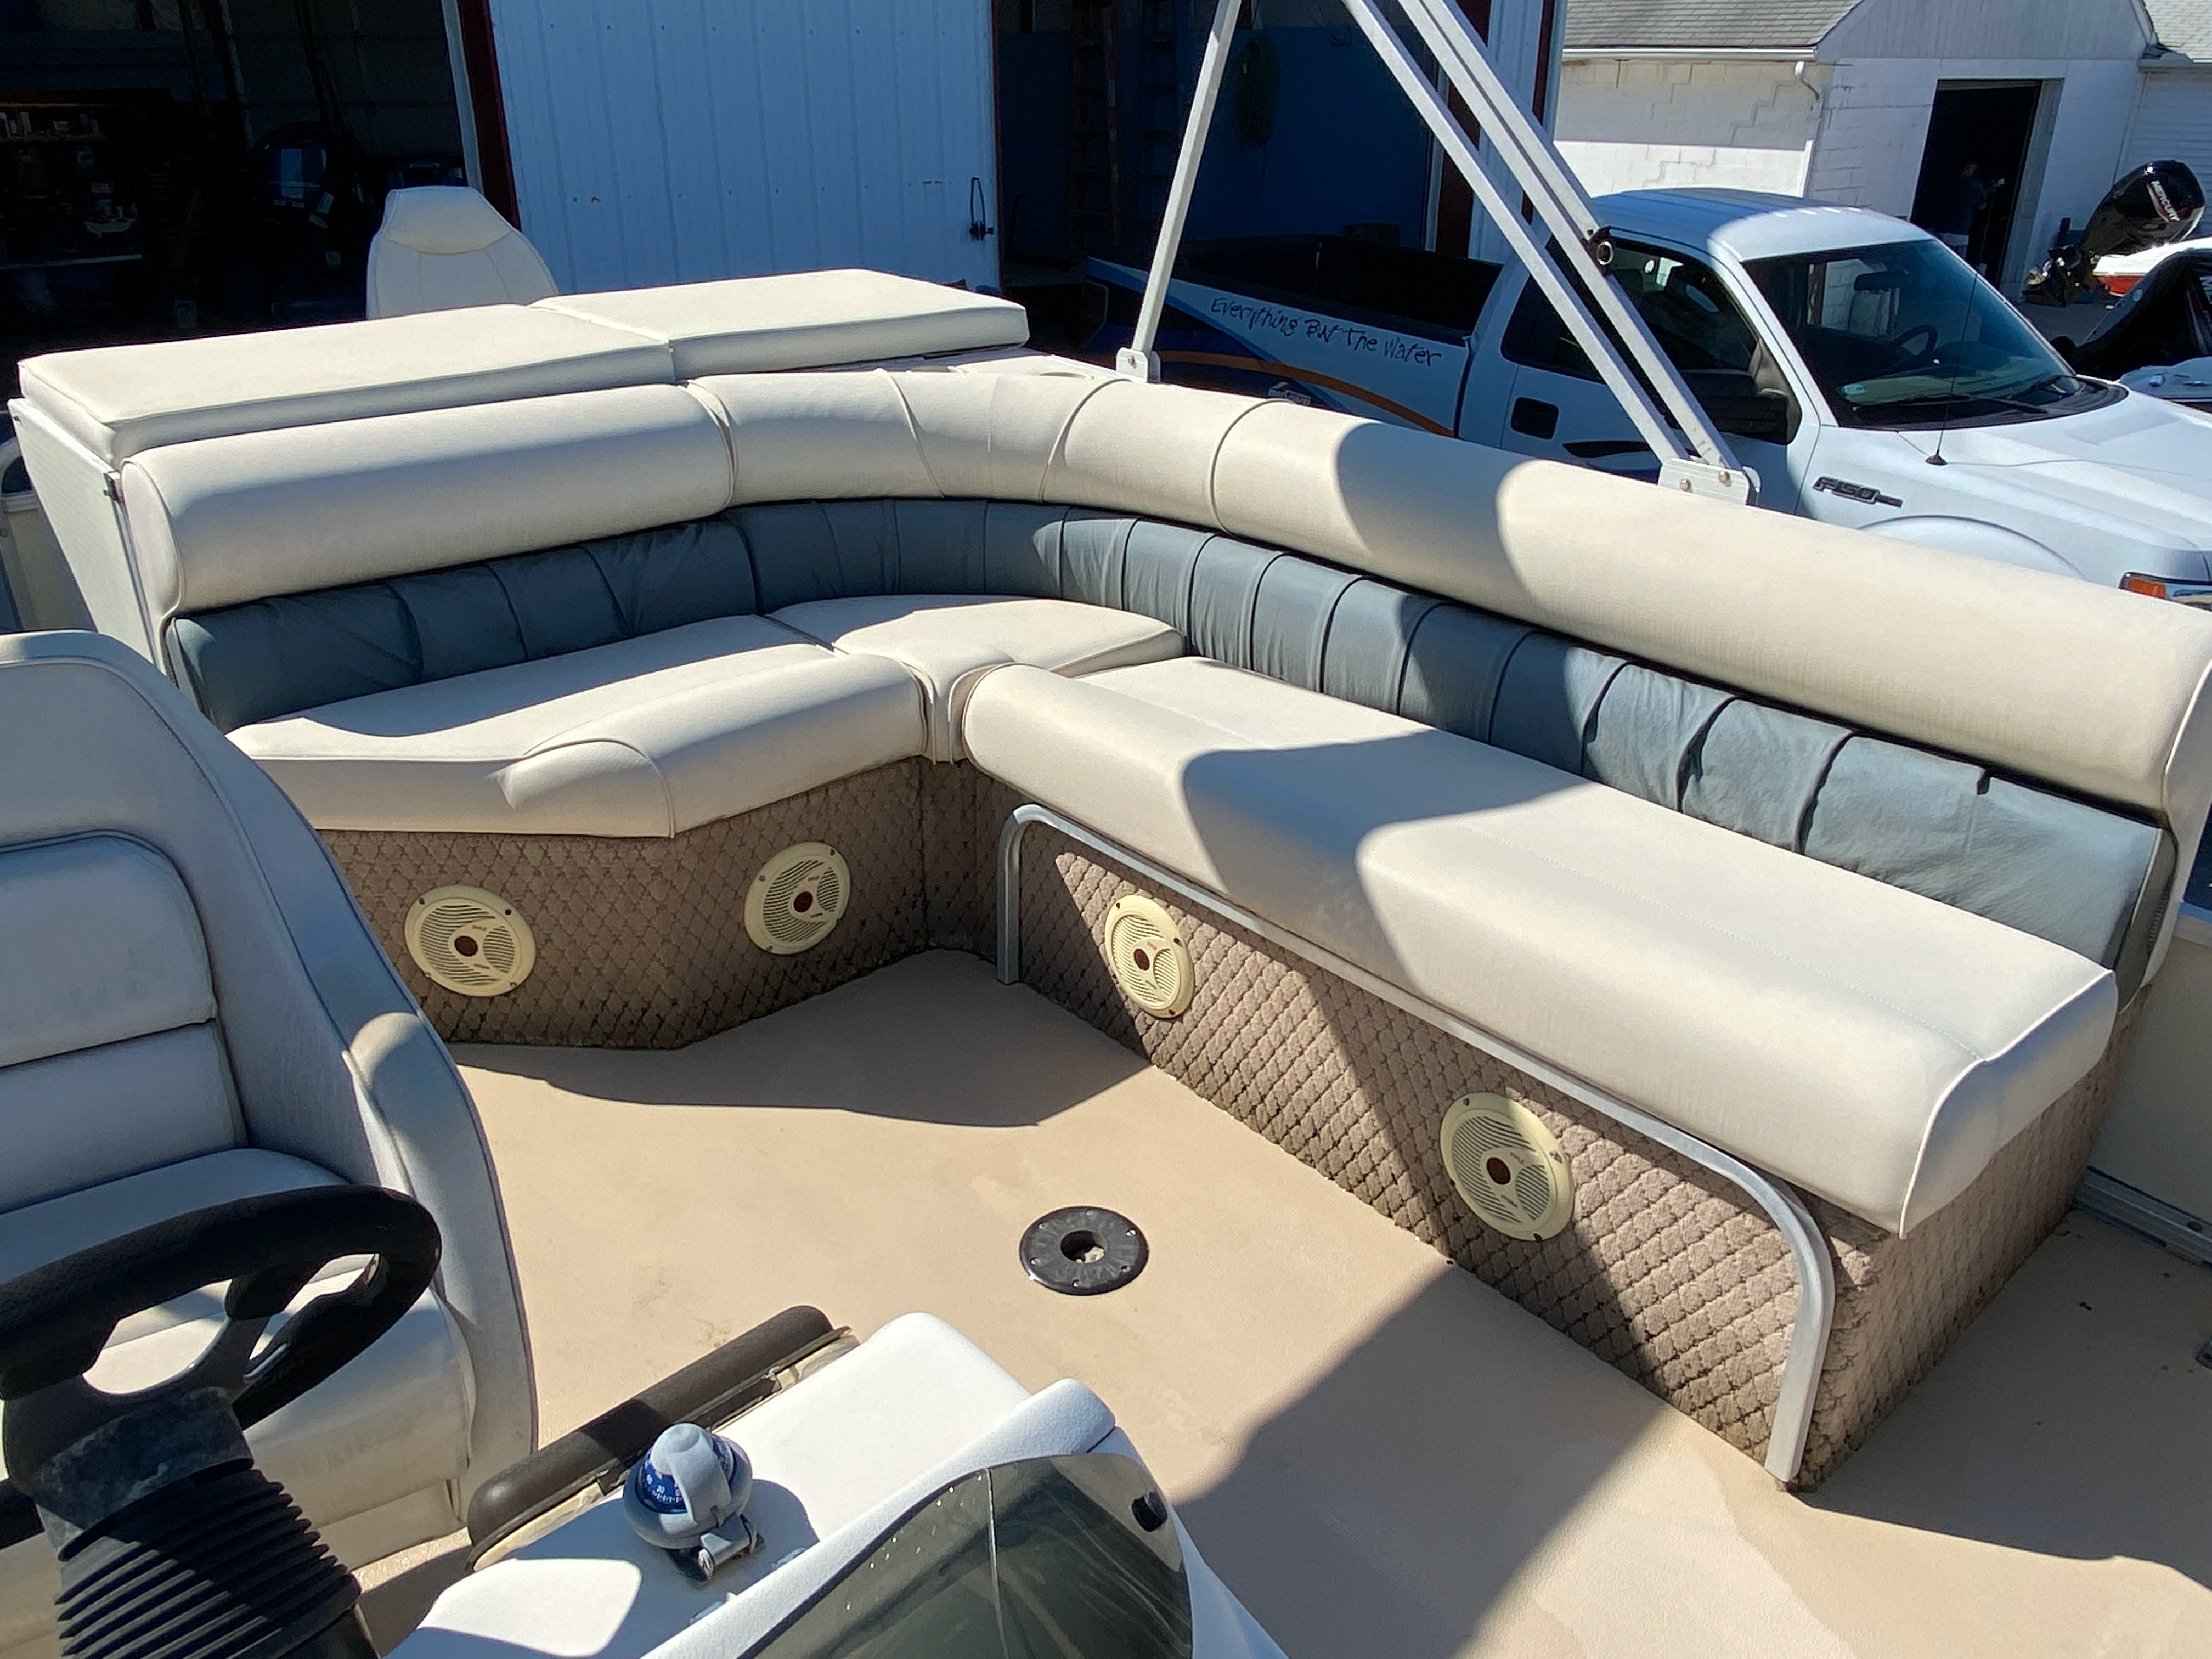 2002 Tahoe boat for sale, model of the boat is Grand Tahoe FNF & Image # 5 of 10